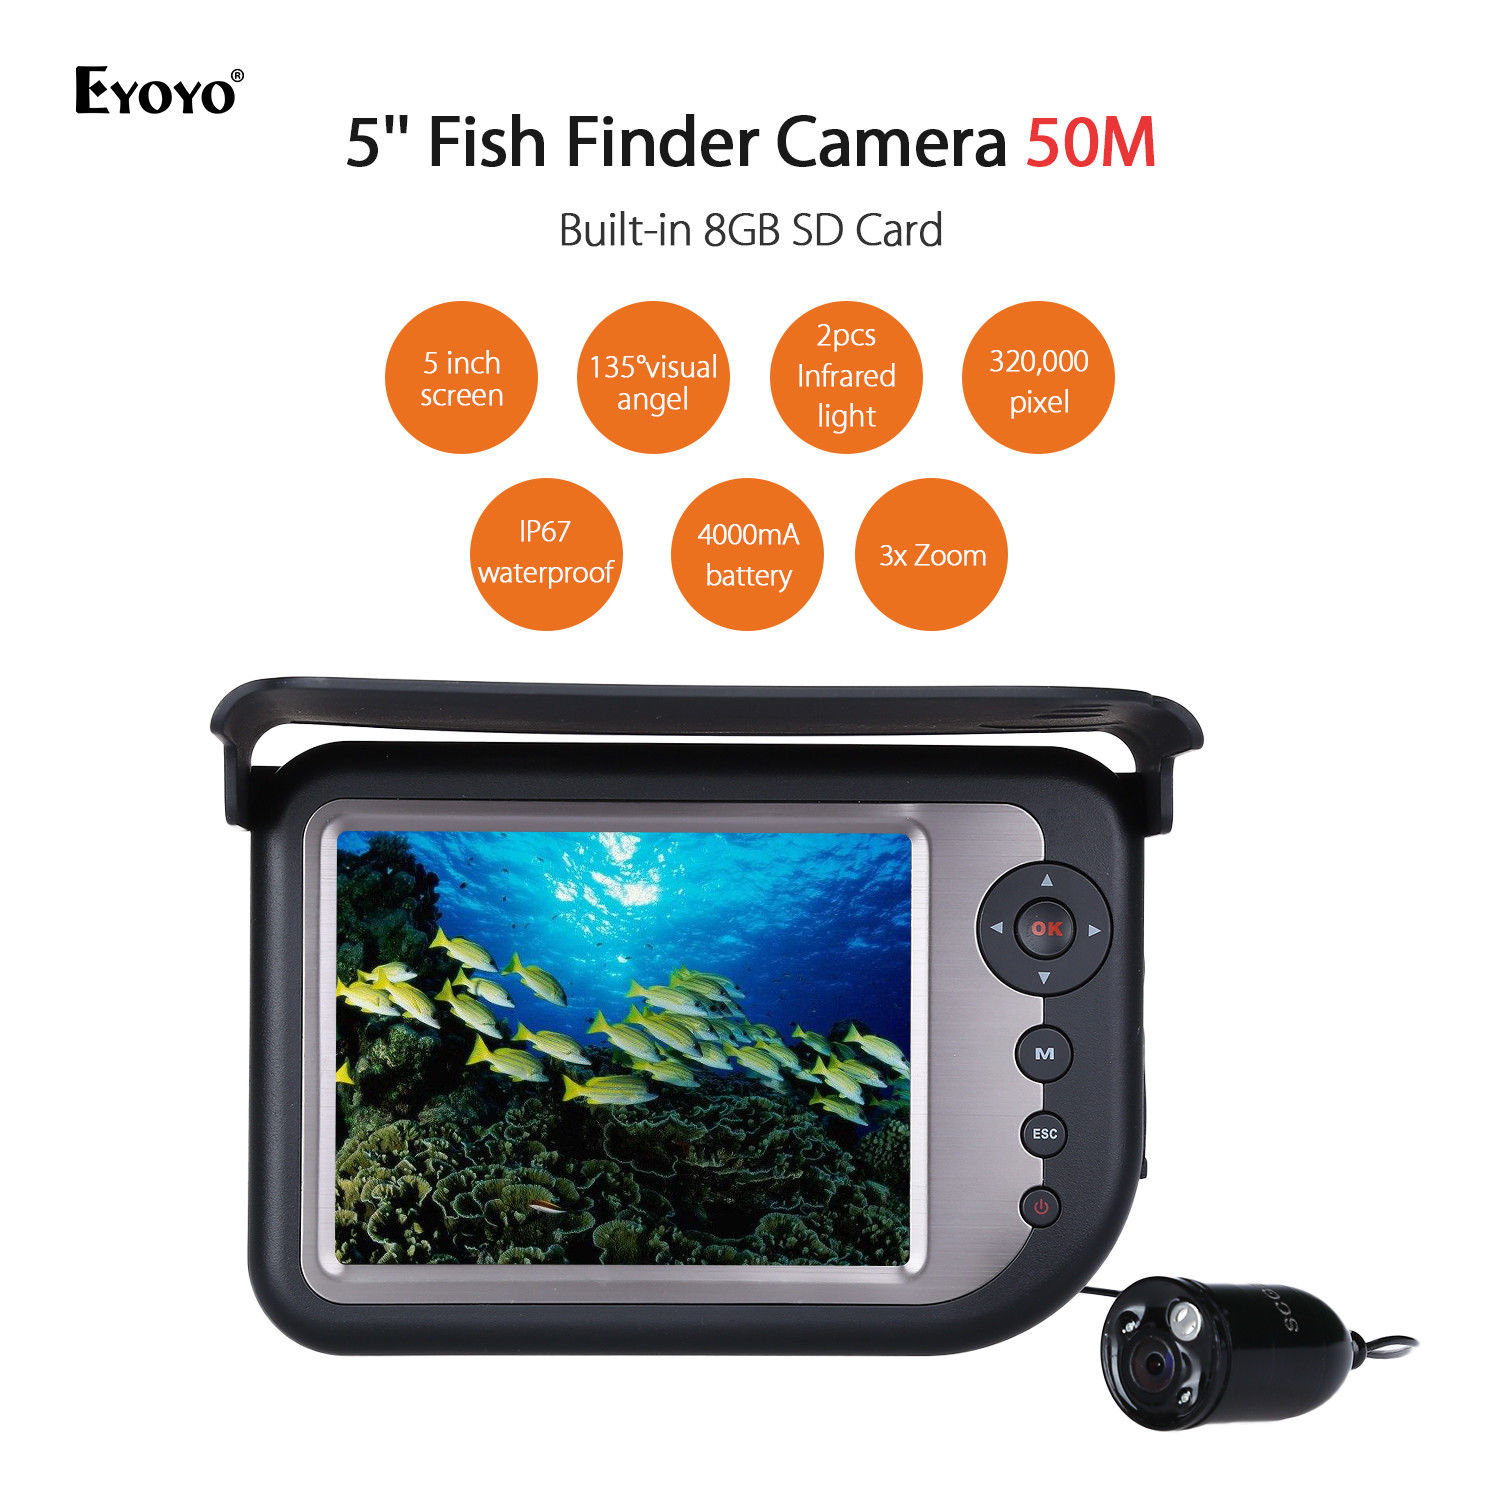 EYOYO LQ-5050DR 50M 5 Infrared Underwater Fishing Camera DVR LCD Monitor 3x Digital Zoom Sun Visor 135degree Wide Angle USB удлинитель zoom ecm 3